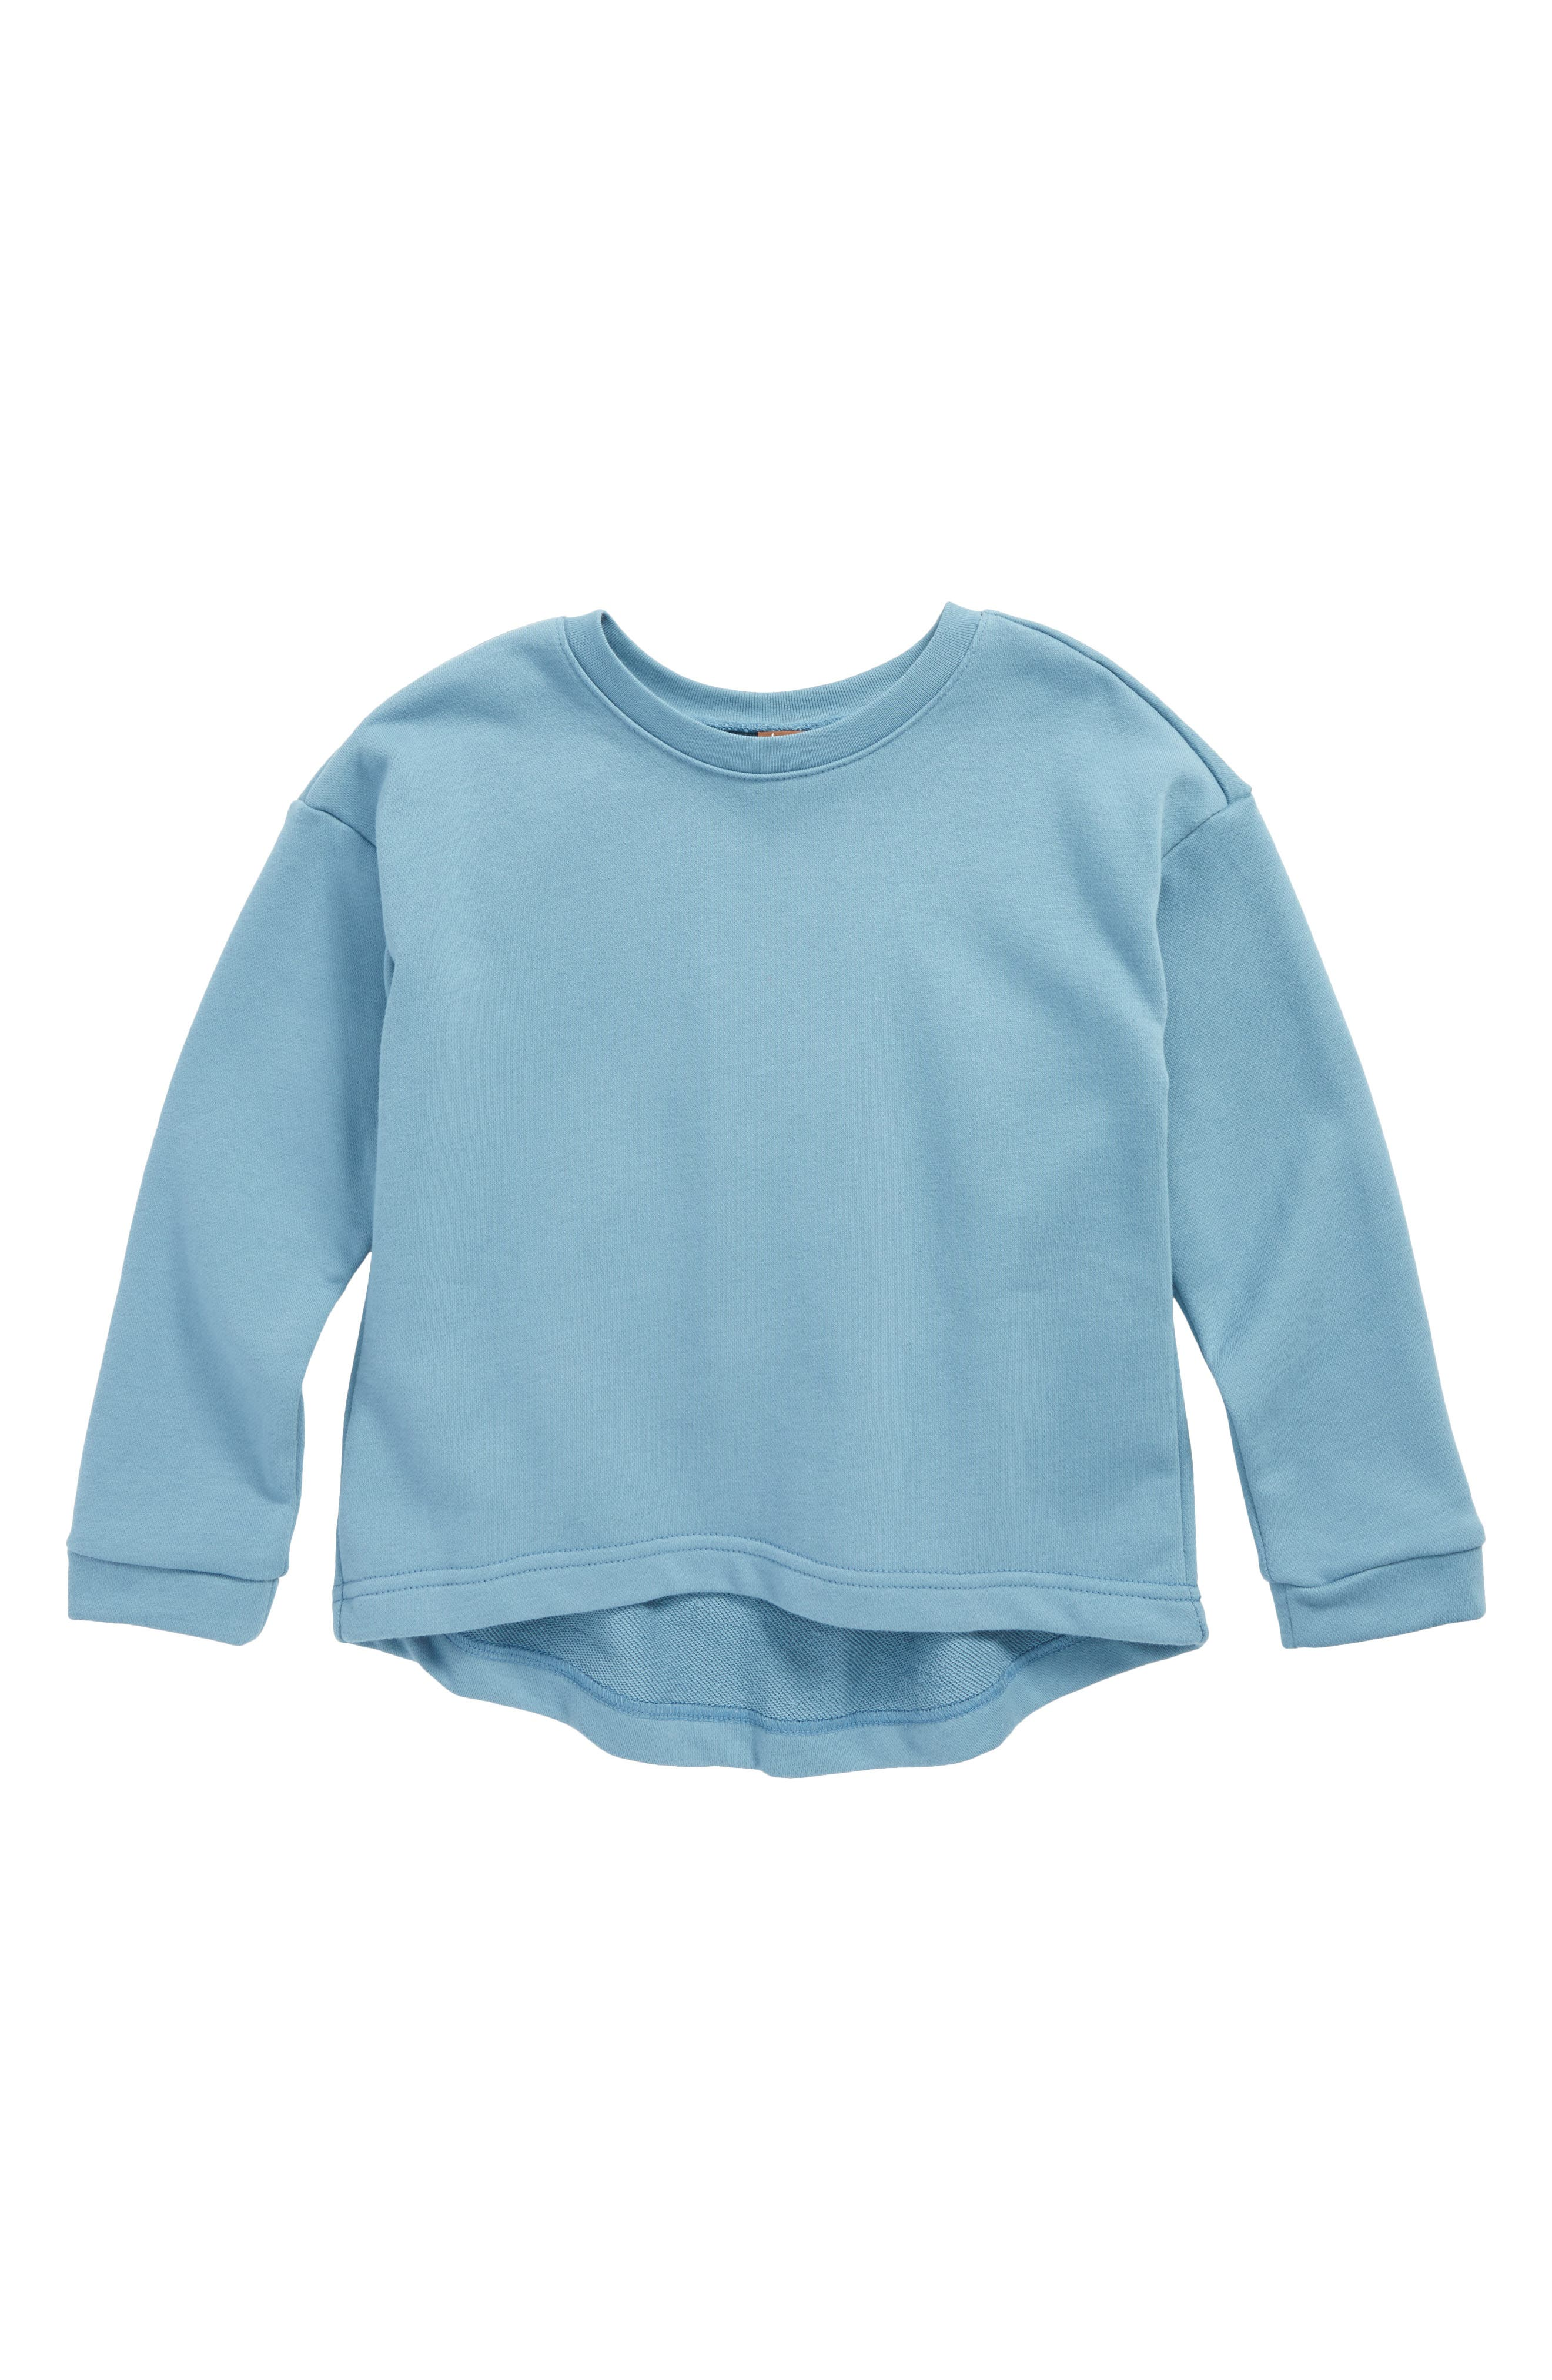 Alternate Image 1 Selected - Tea Collection Fairy Wings Pullover (Toddler Girls, Little Girls & Big Girls)